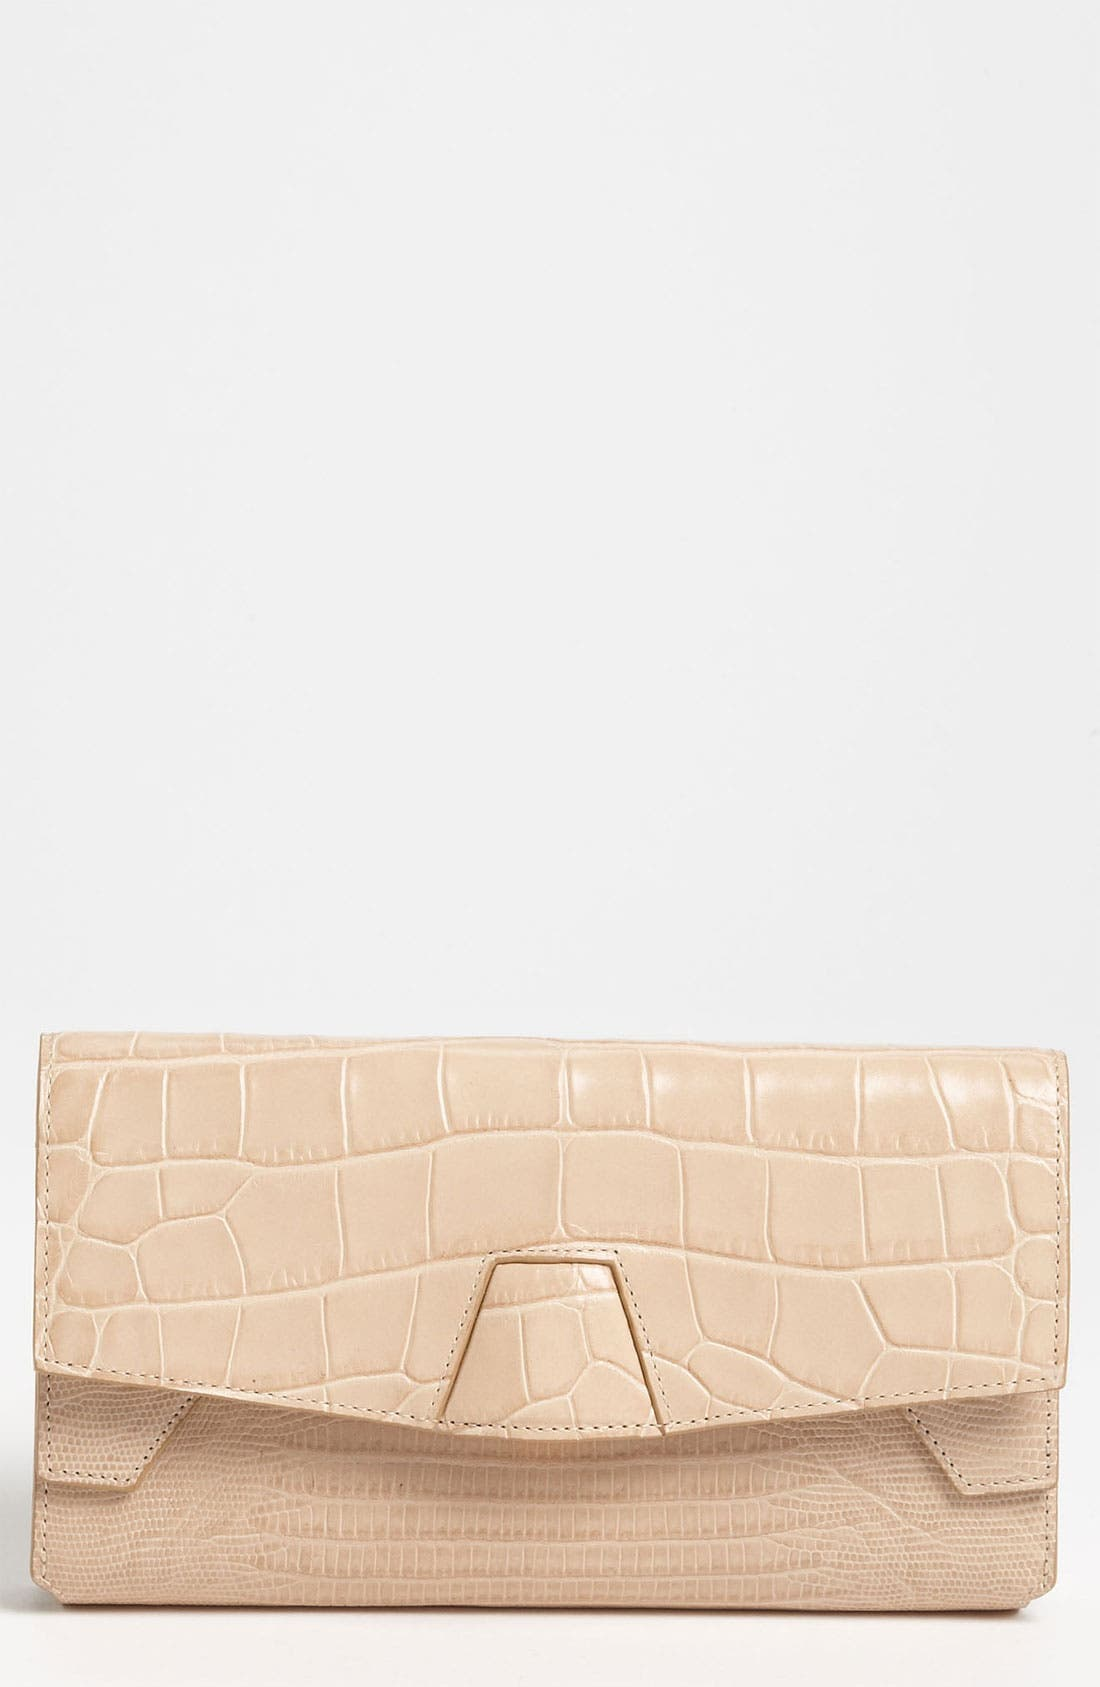 Alternate Image 1 Selected - Alexander Wang Trifold Embossed Leather Clutch